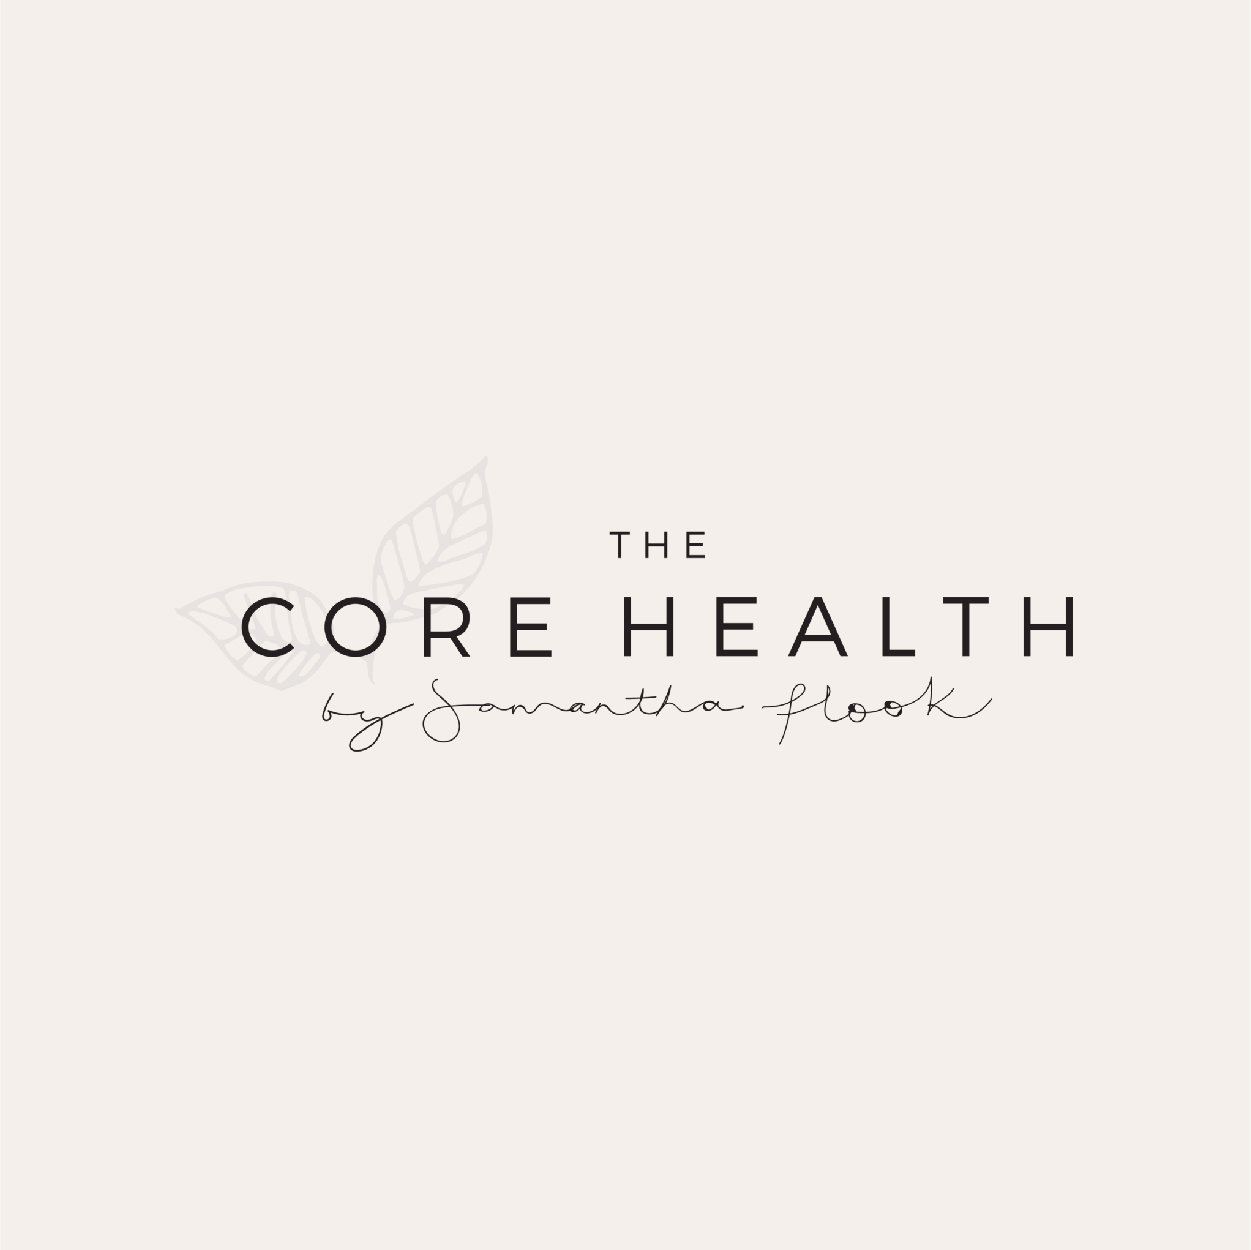 THE CORE HEALTH BY SAMANTHA FLOOK   Website Design